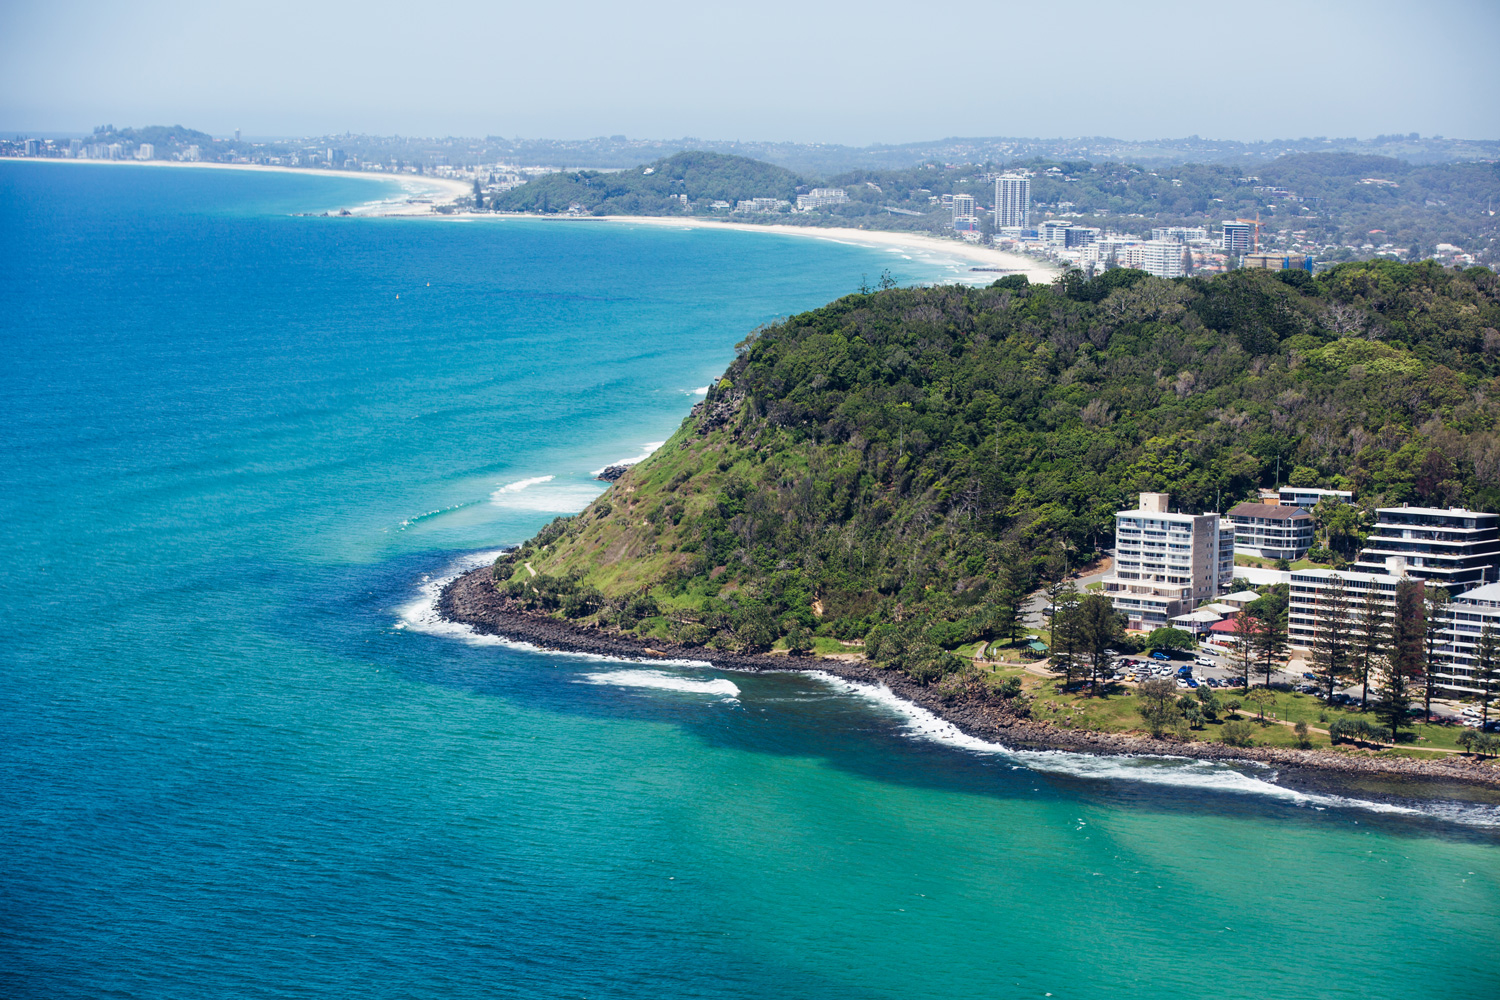 a scenic shot of Burleigh heads with the ocean and the land